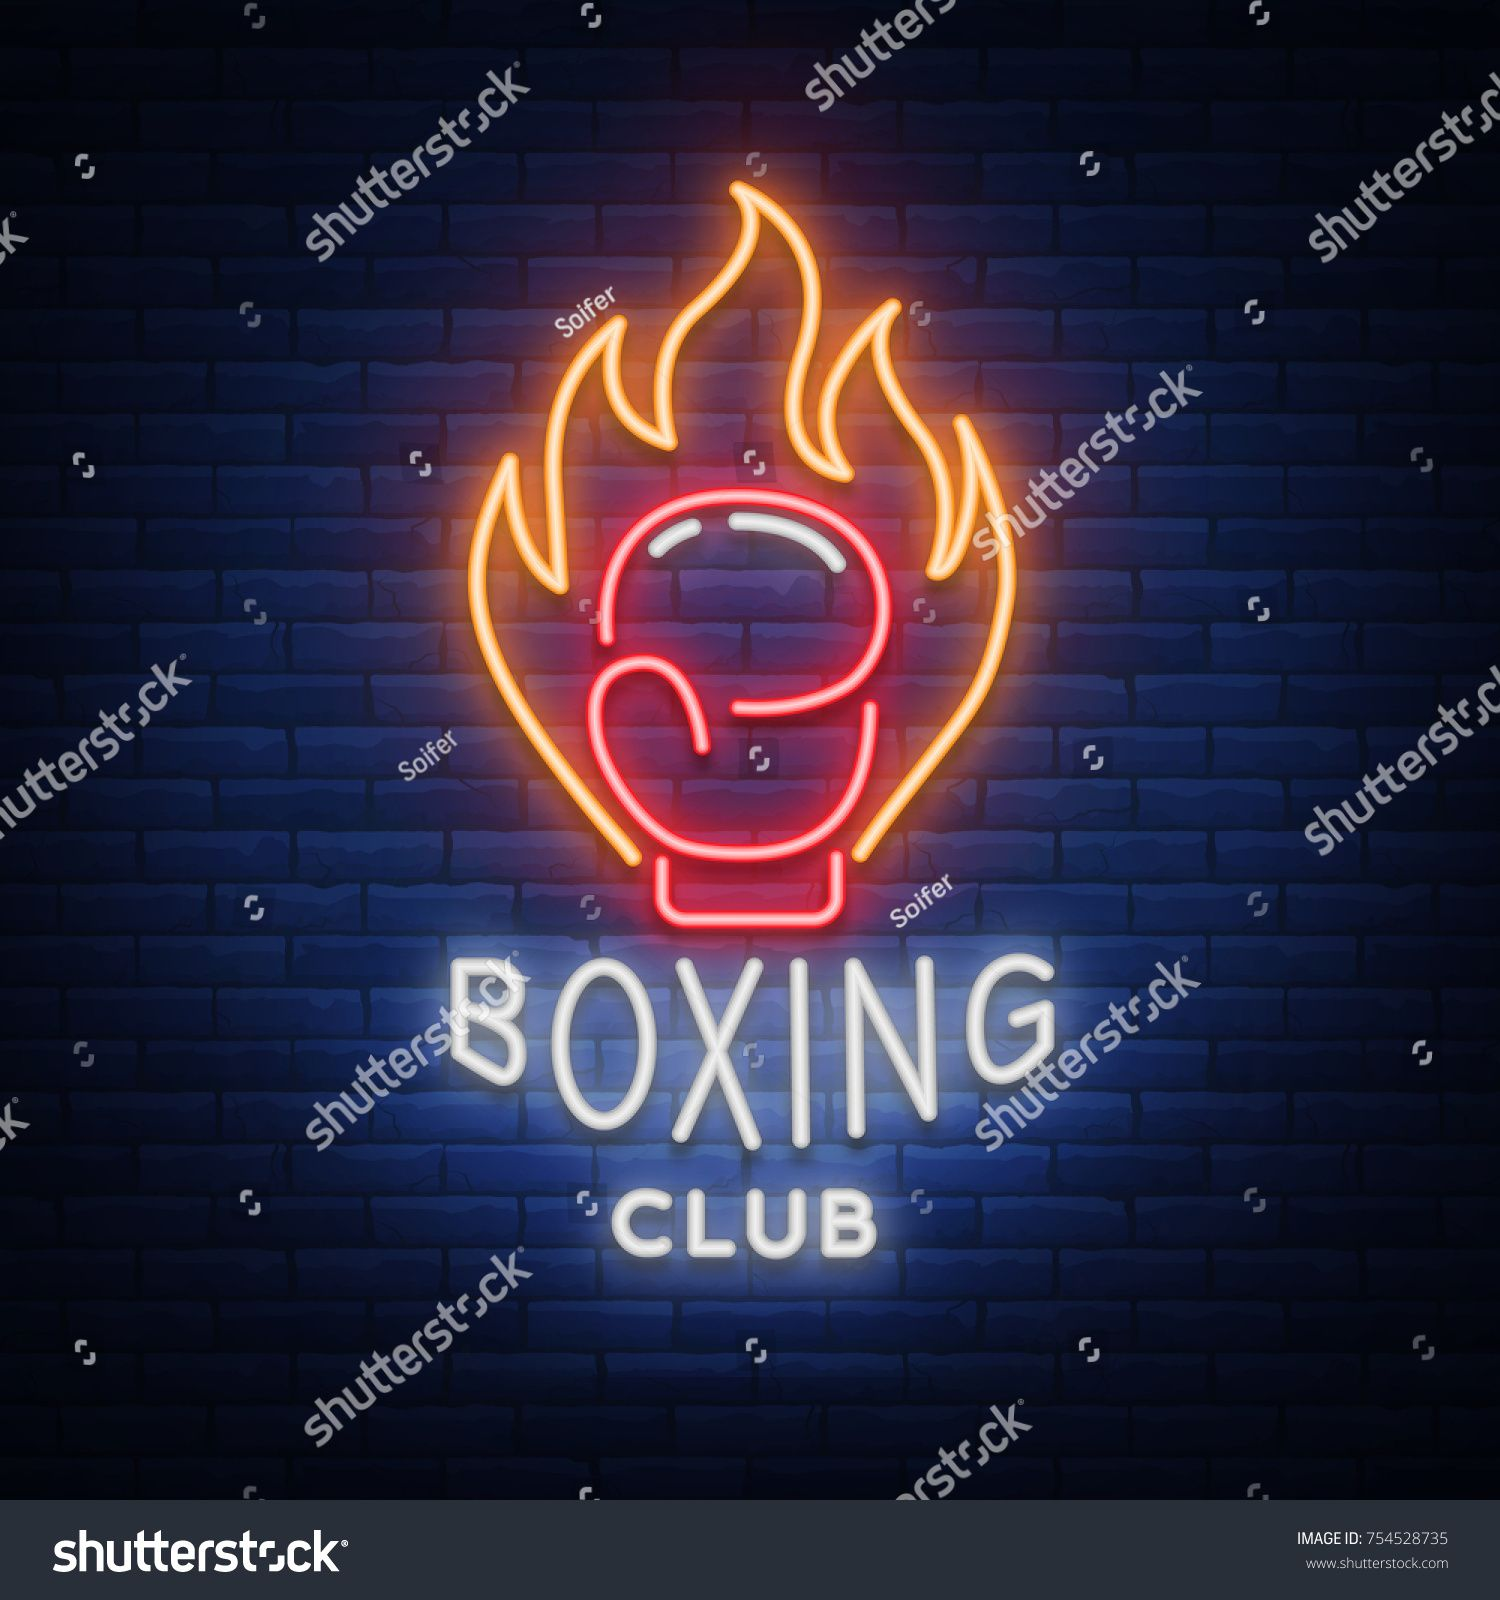 Boxing club logo in neon style, vector illustration